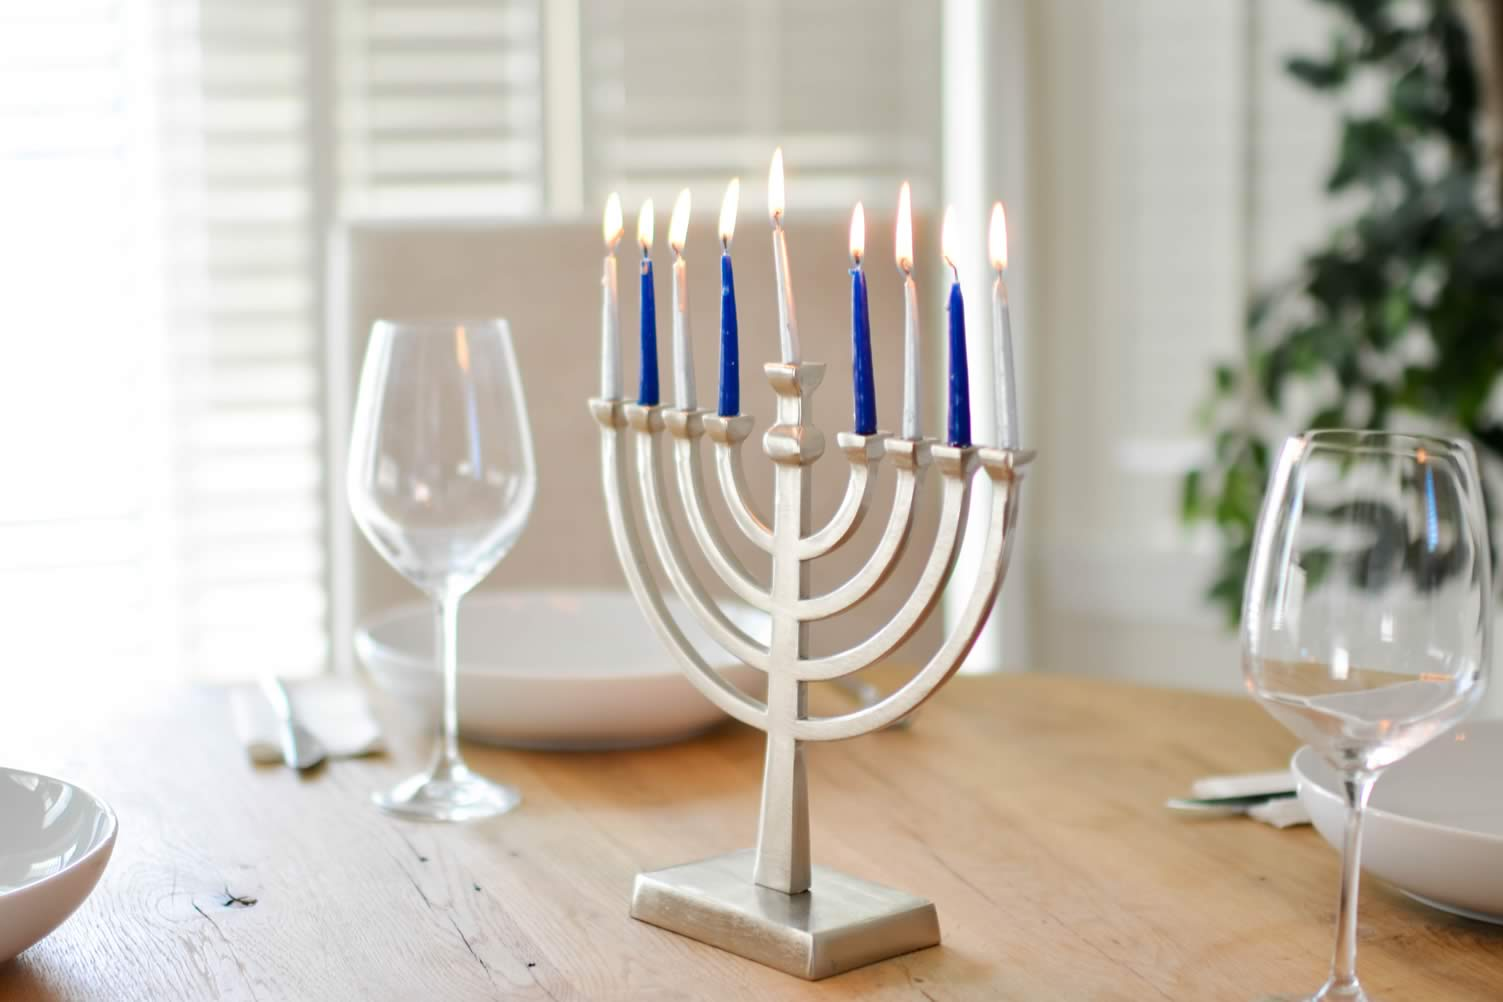 Happy Hannukkah